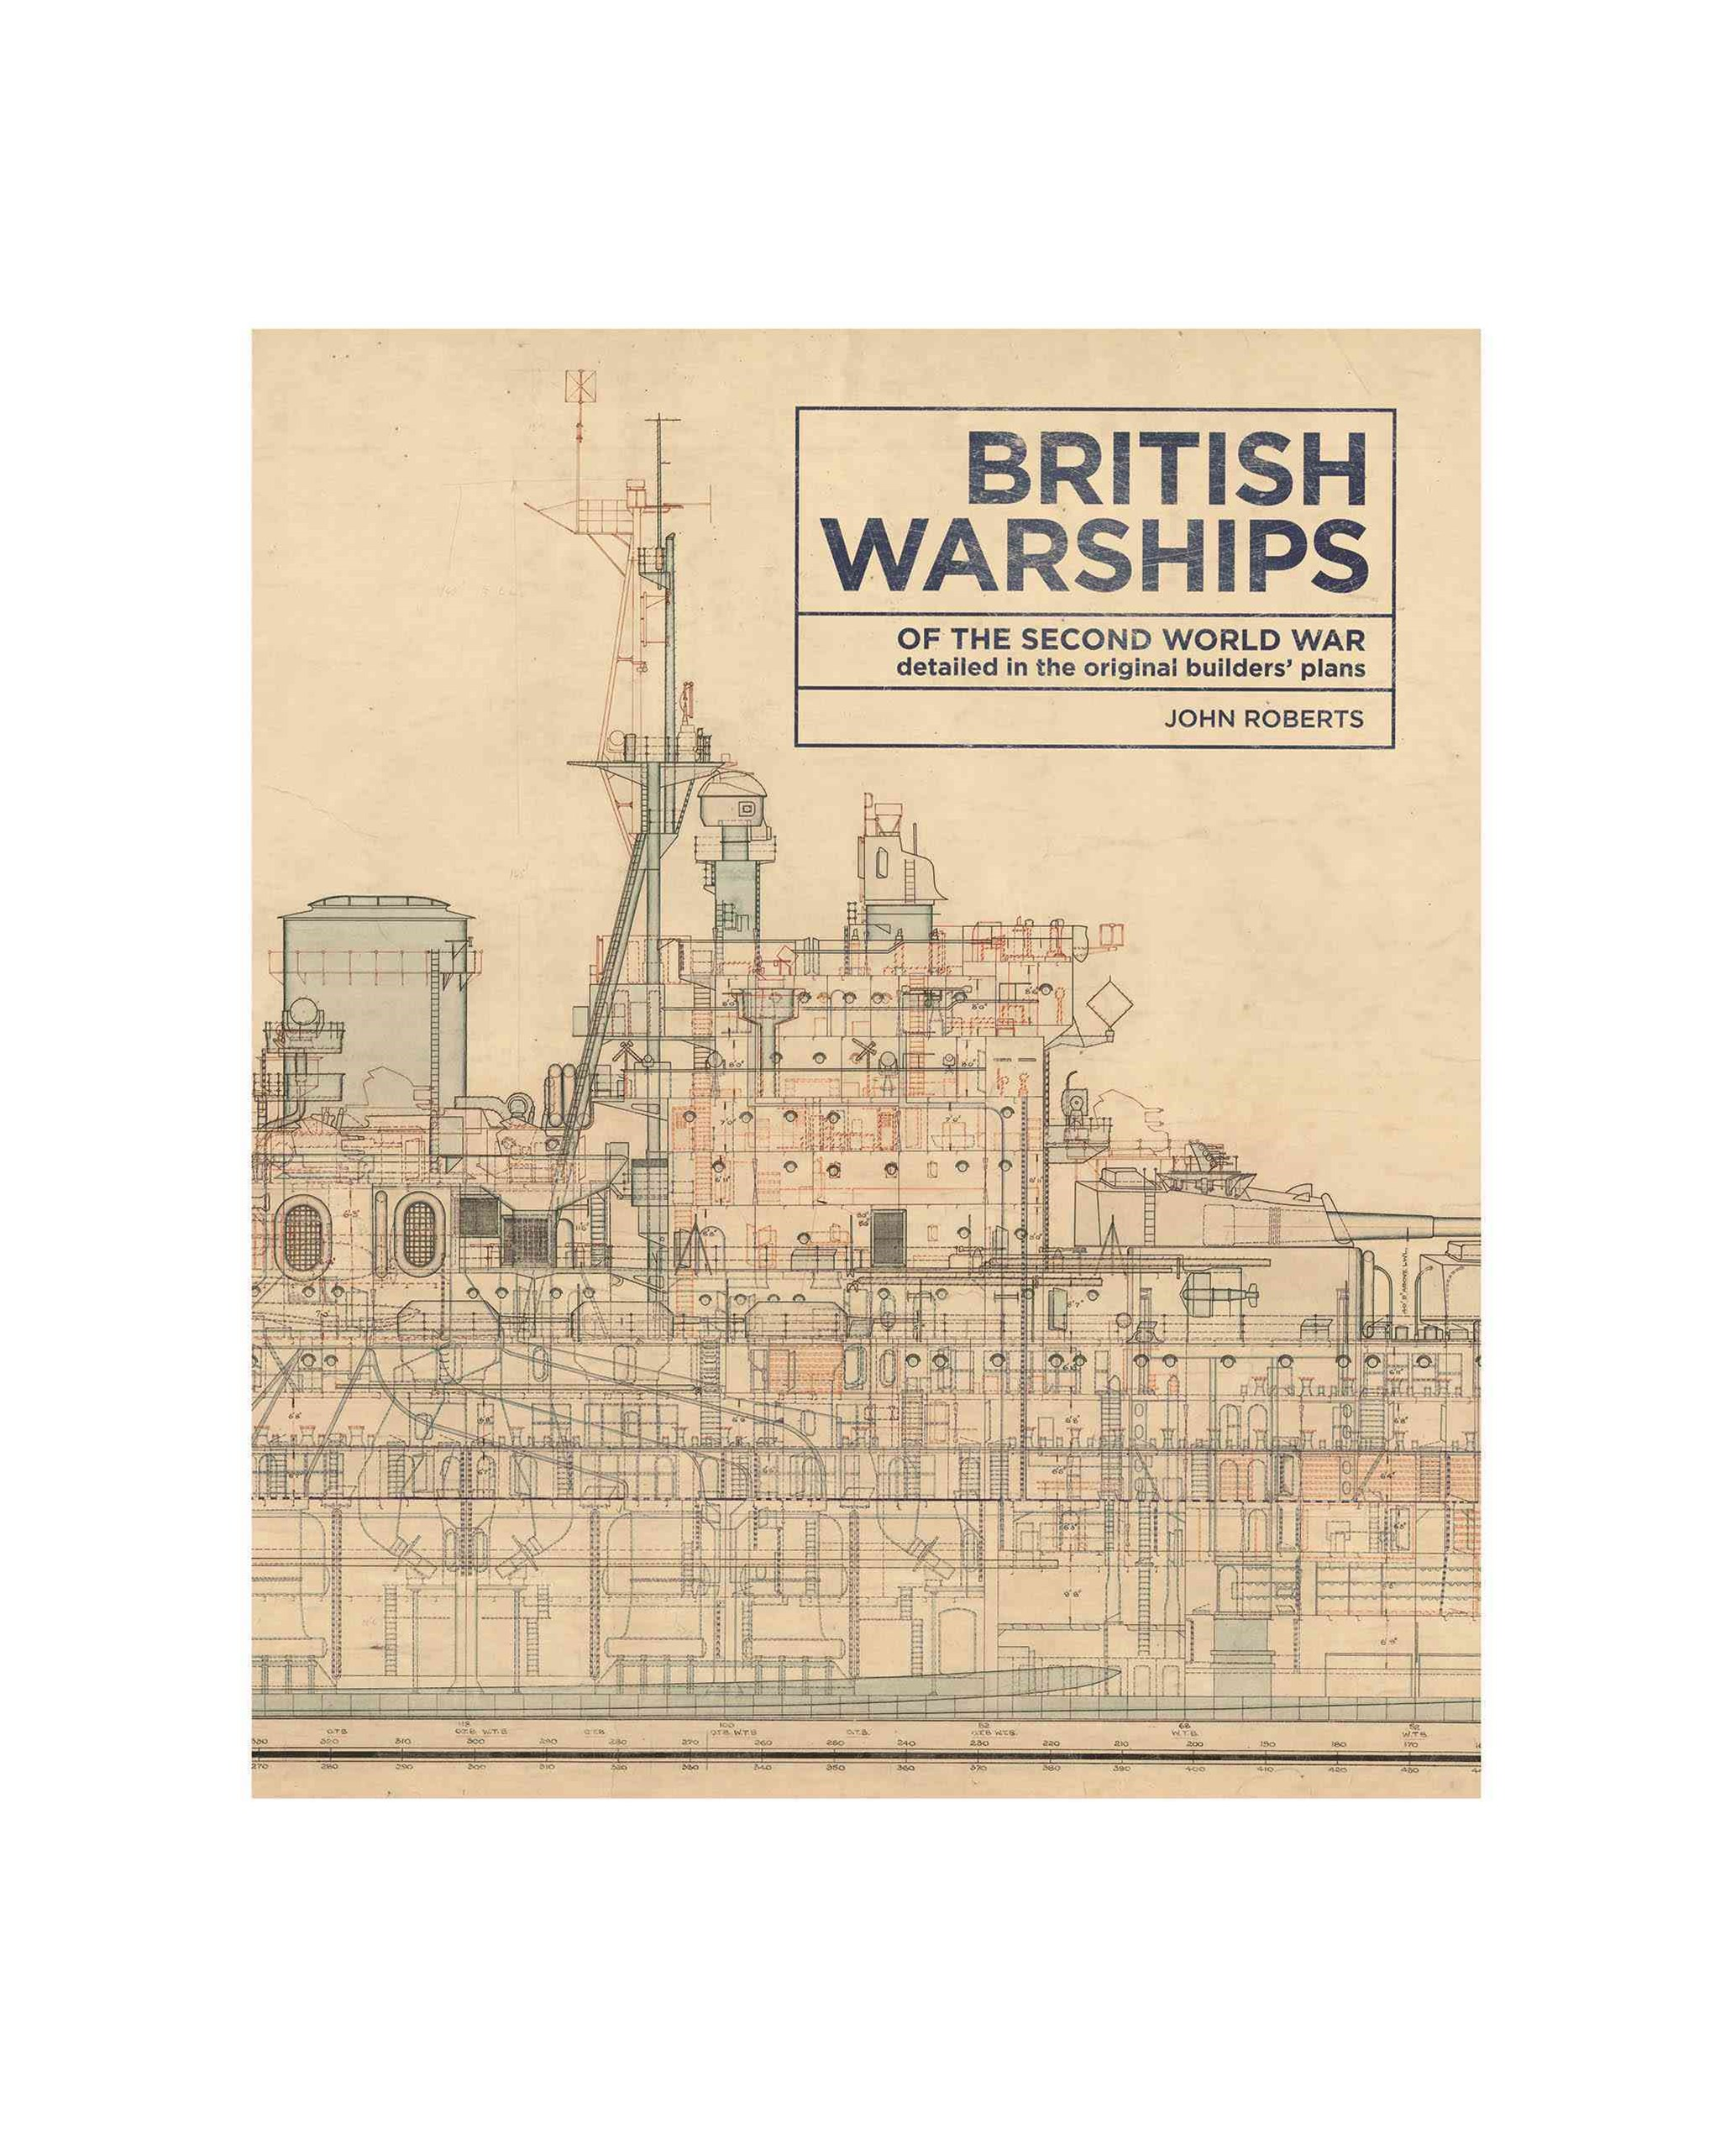 British Warships of the Second World War